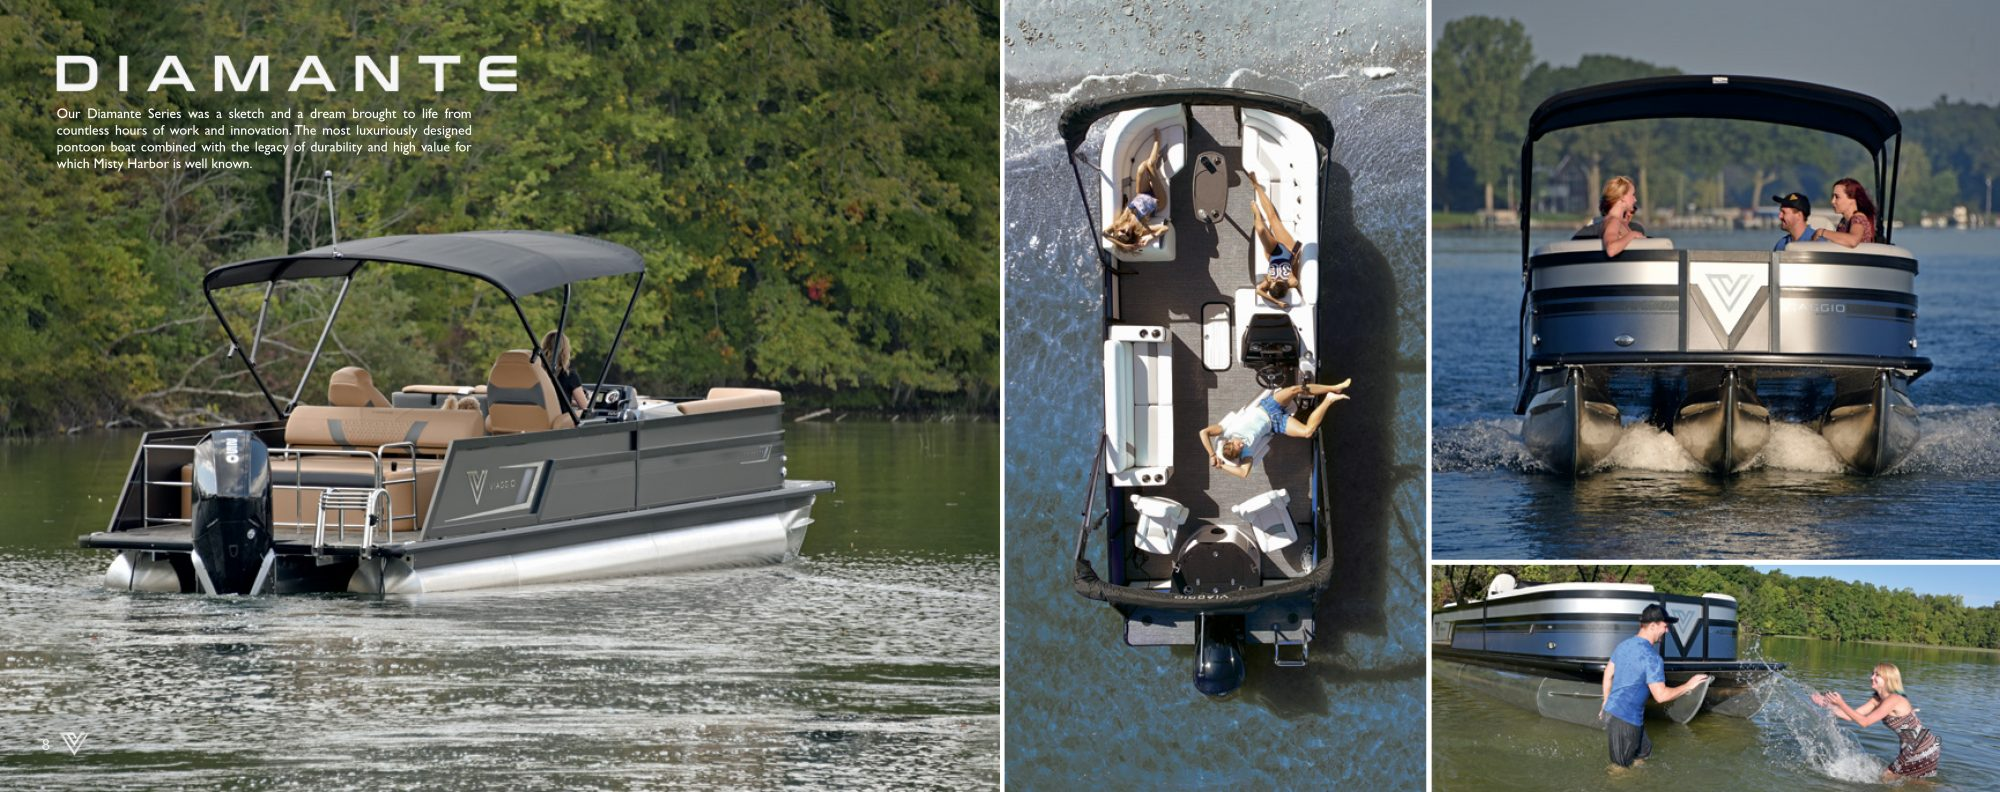 diamante pontoon sold by captiva boat sales and service